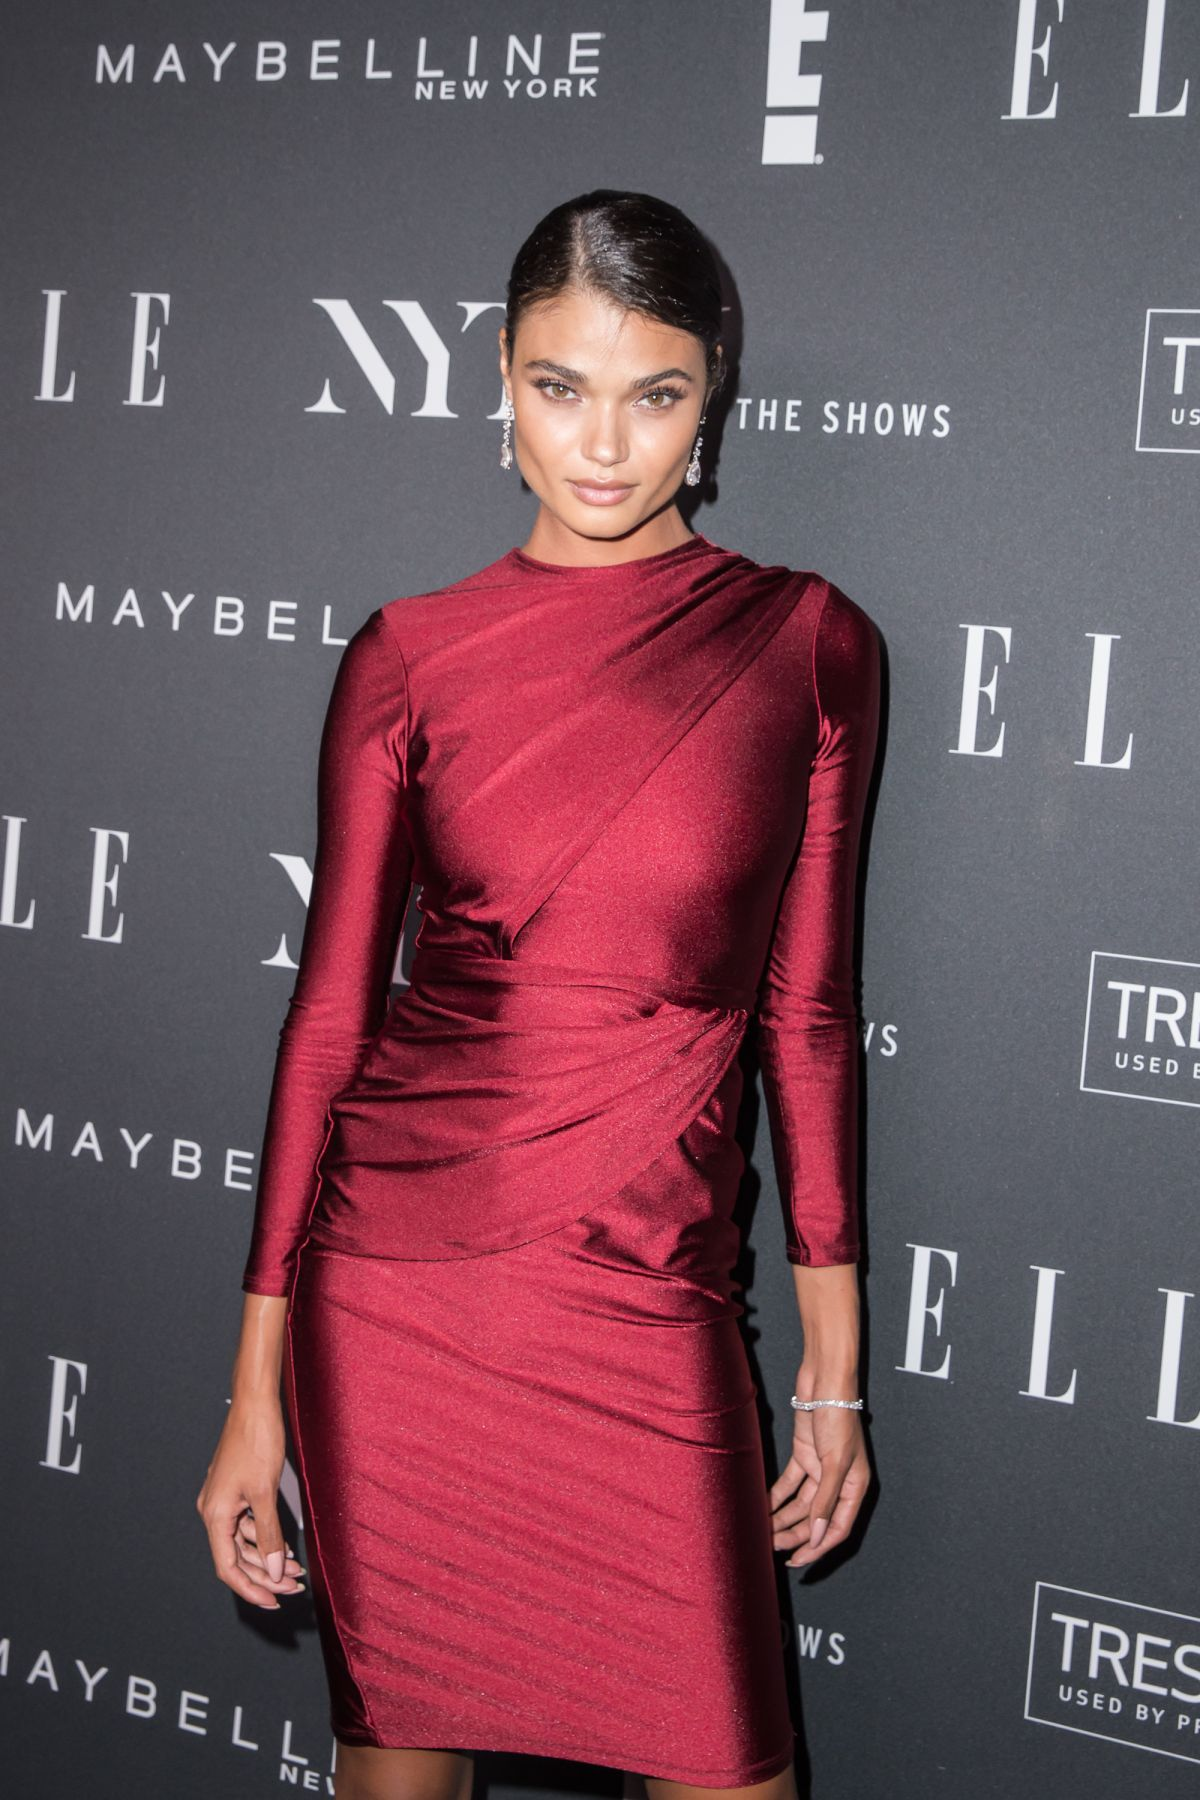 daniela-braga-at-e-elle-and-img-party-in-new-york-09-05-2018-3.jpg